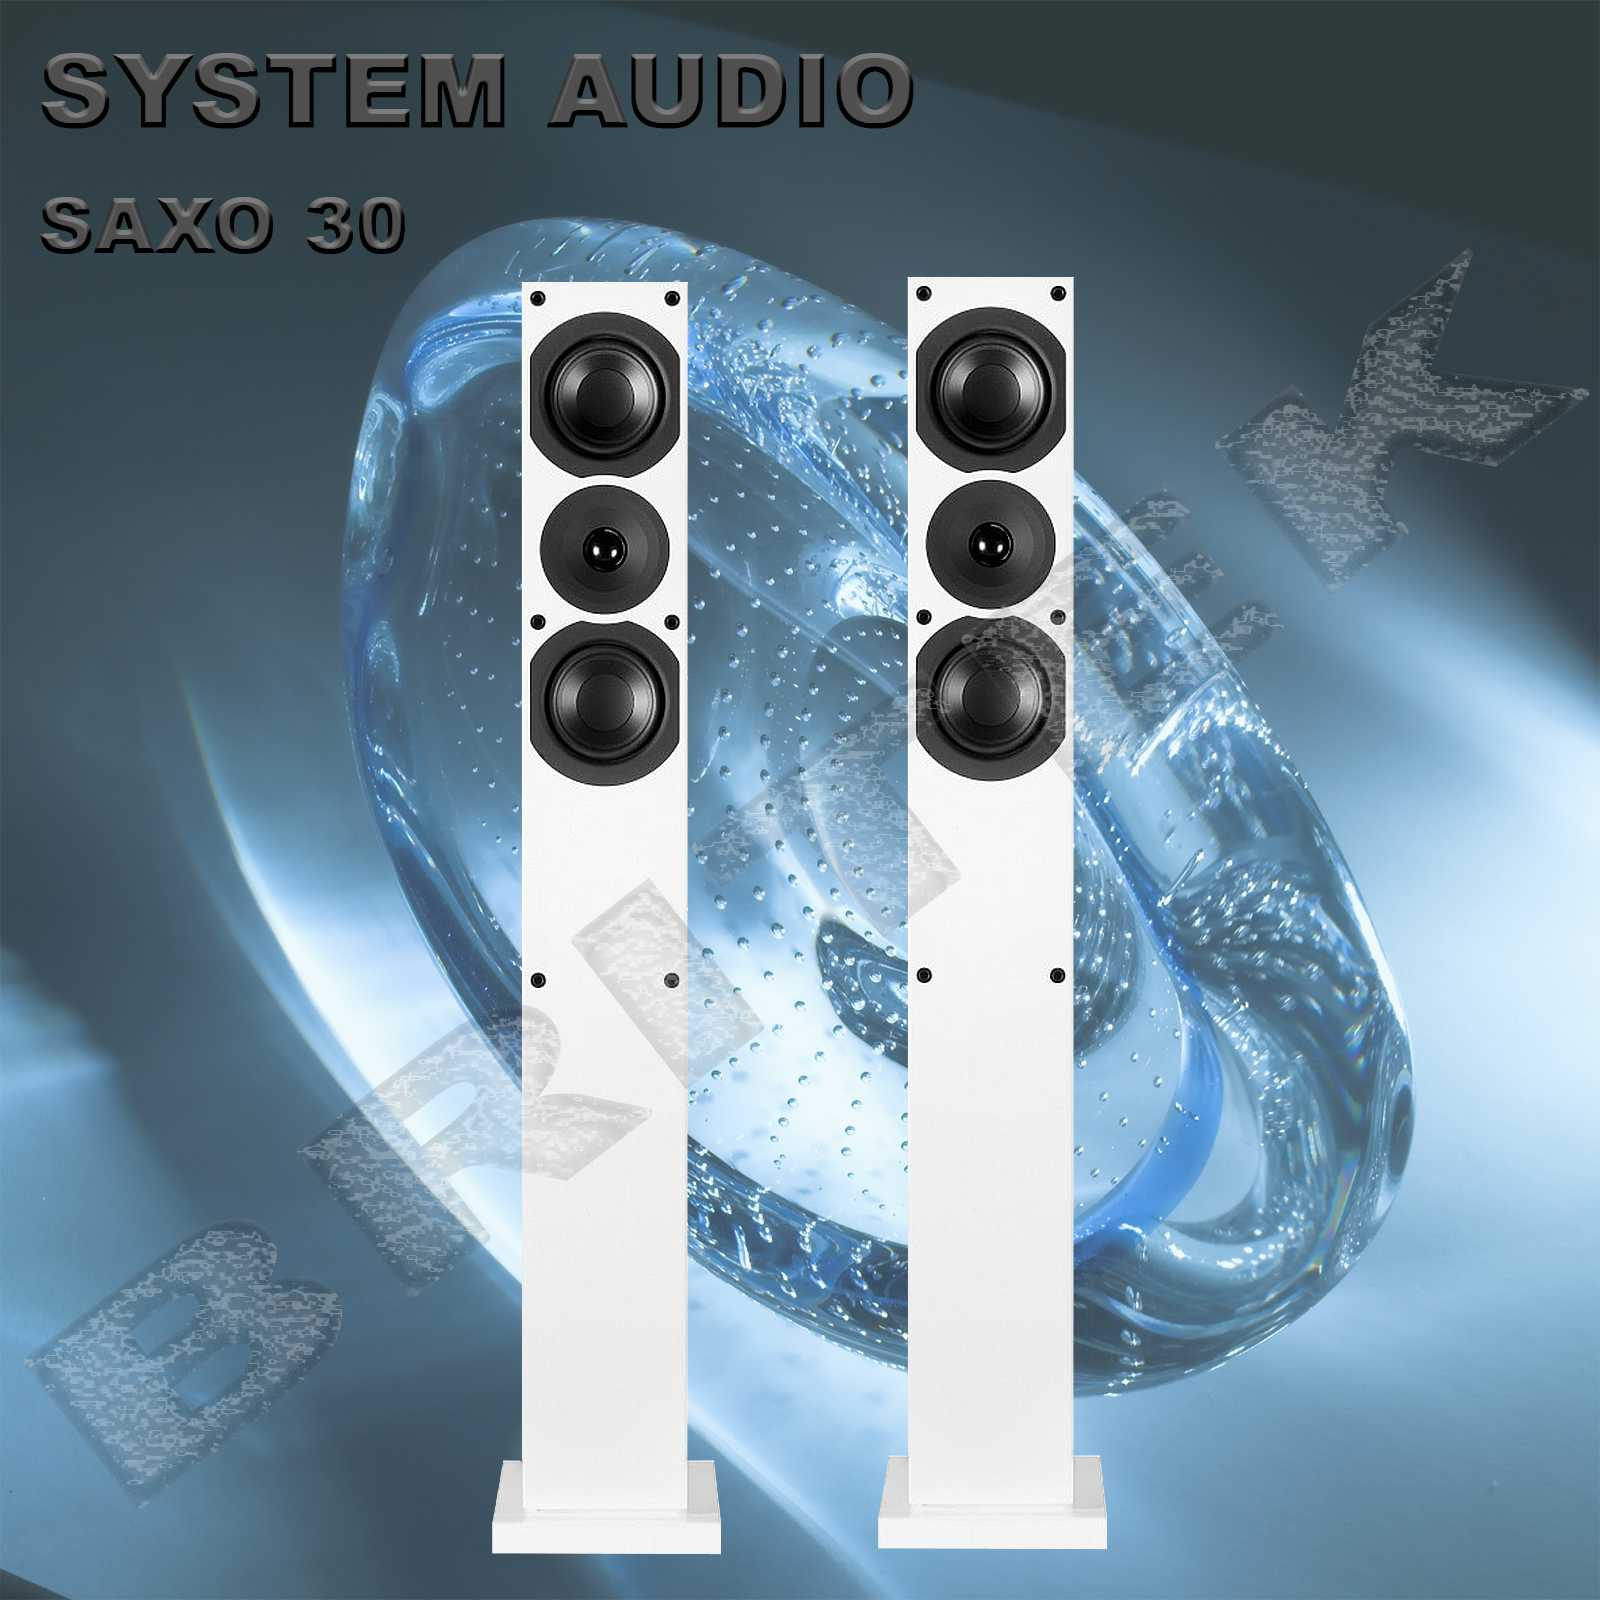 SYSTEM AUDIO SAXO 30